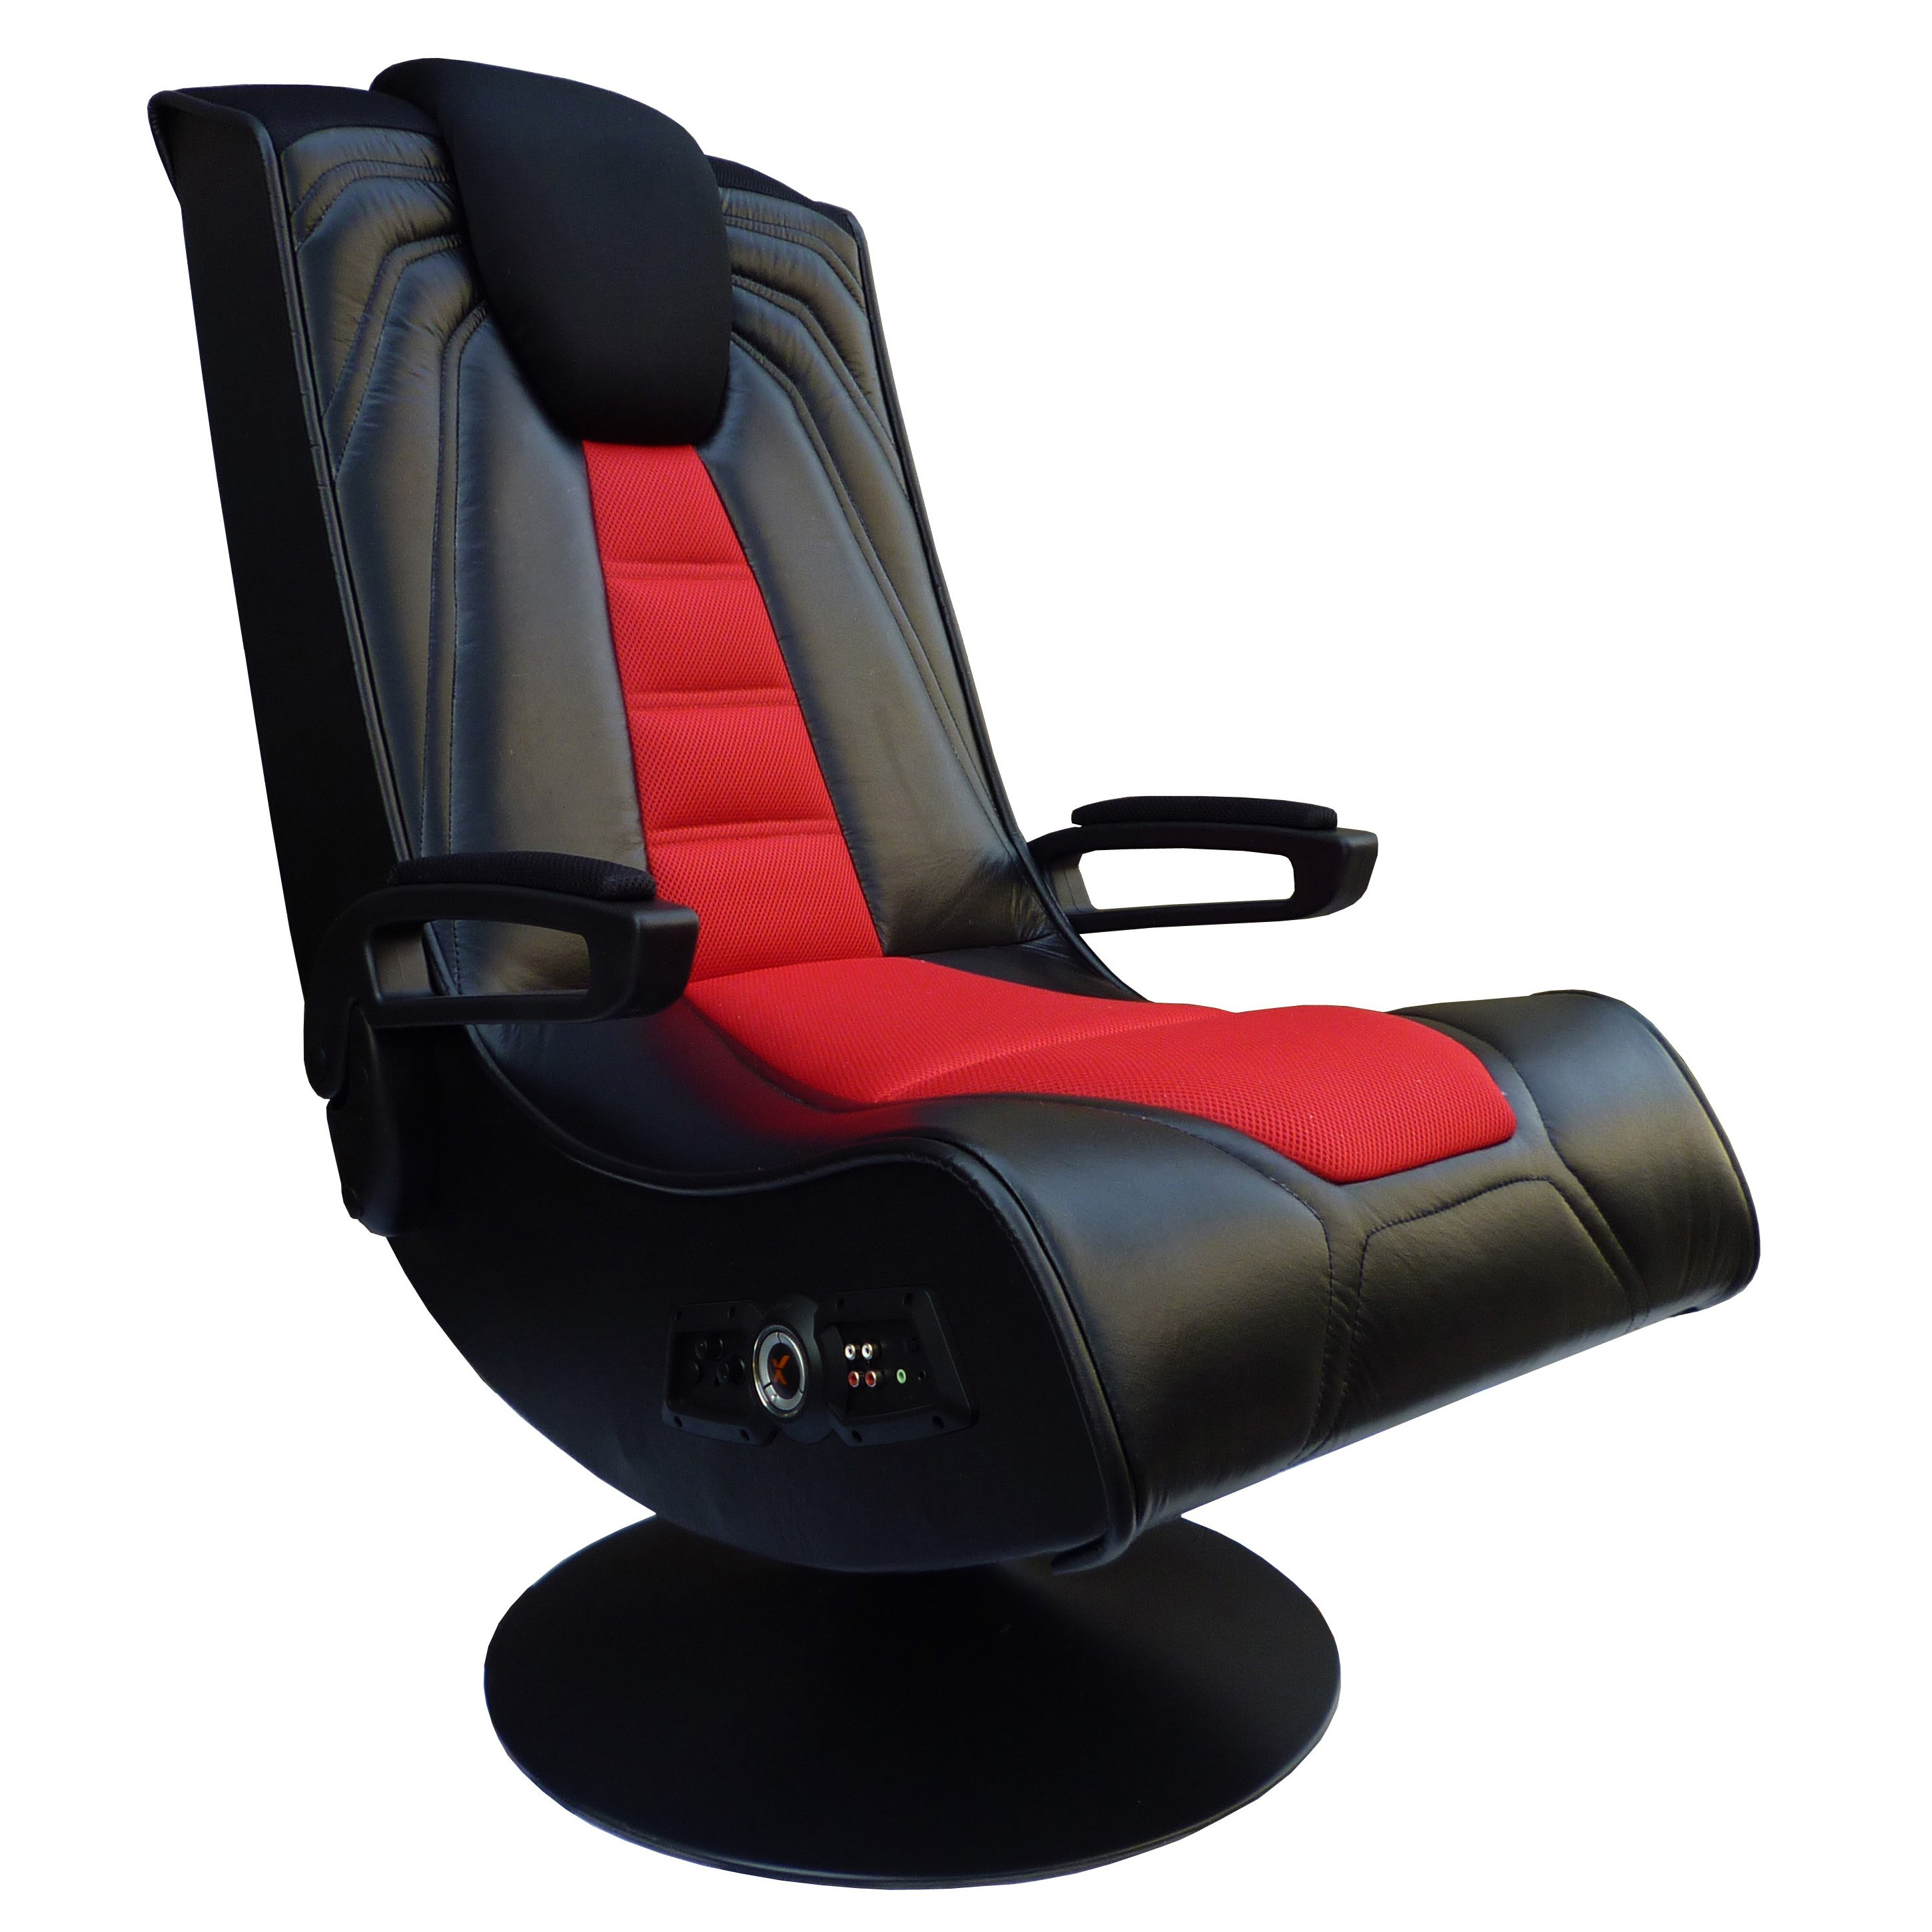 X rocker spider 2 1 wireless with vibration game chair 5109201